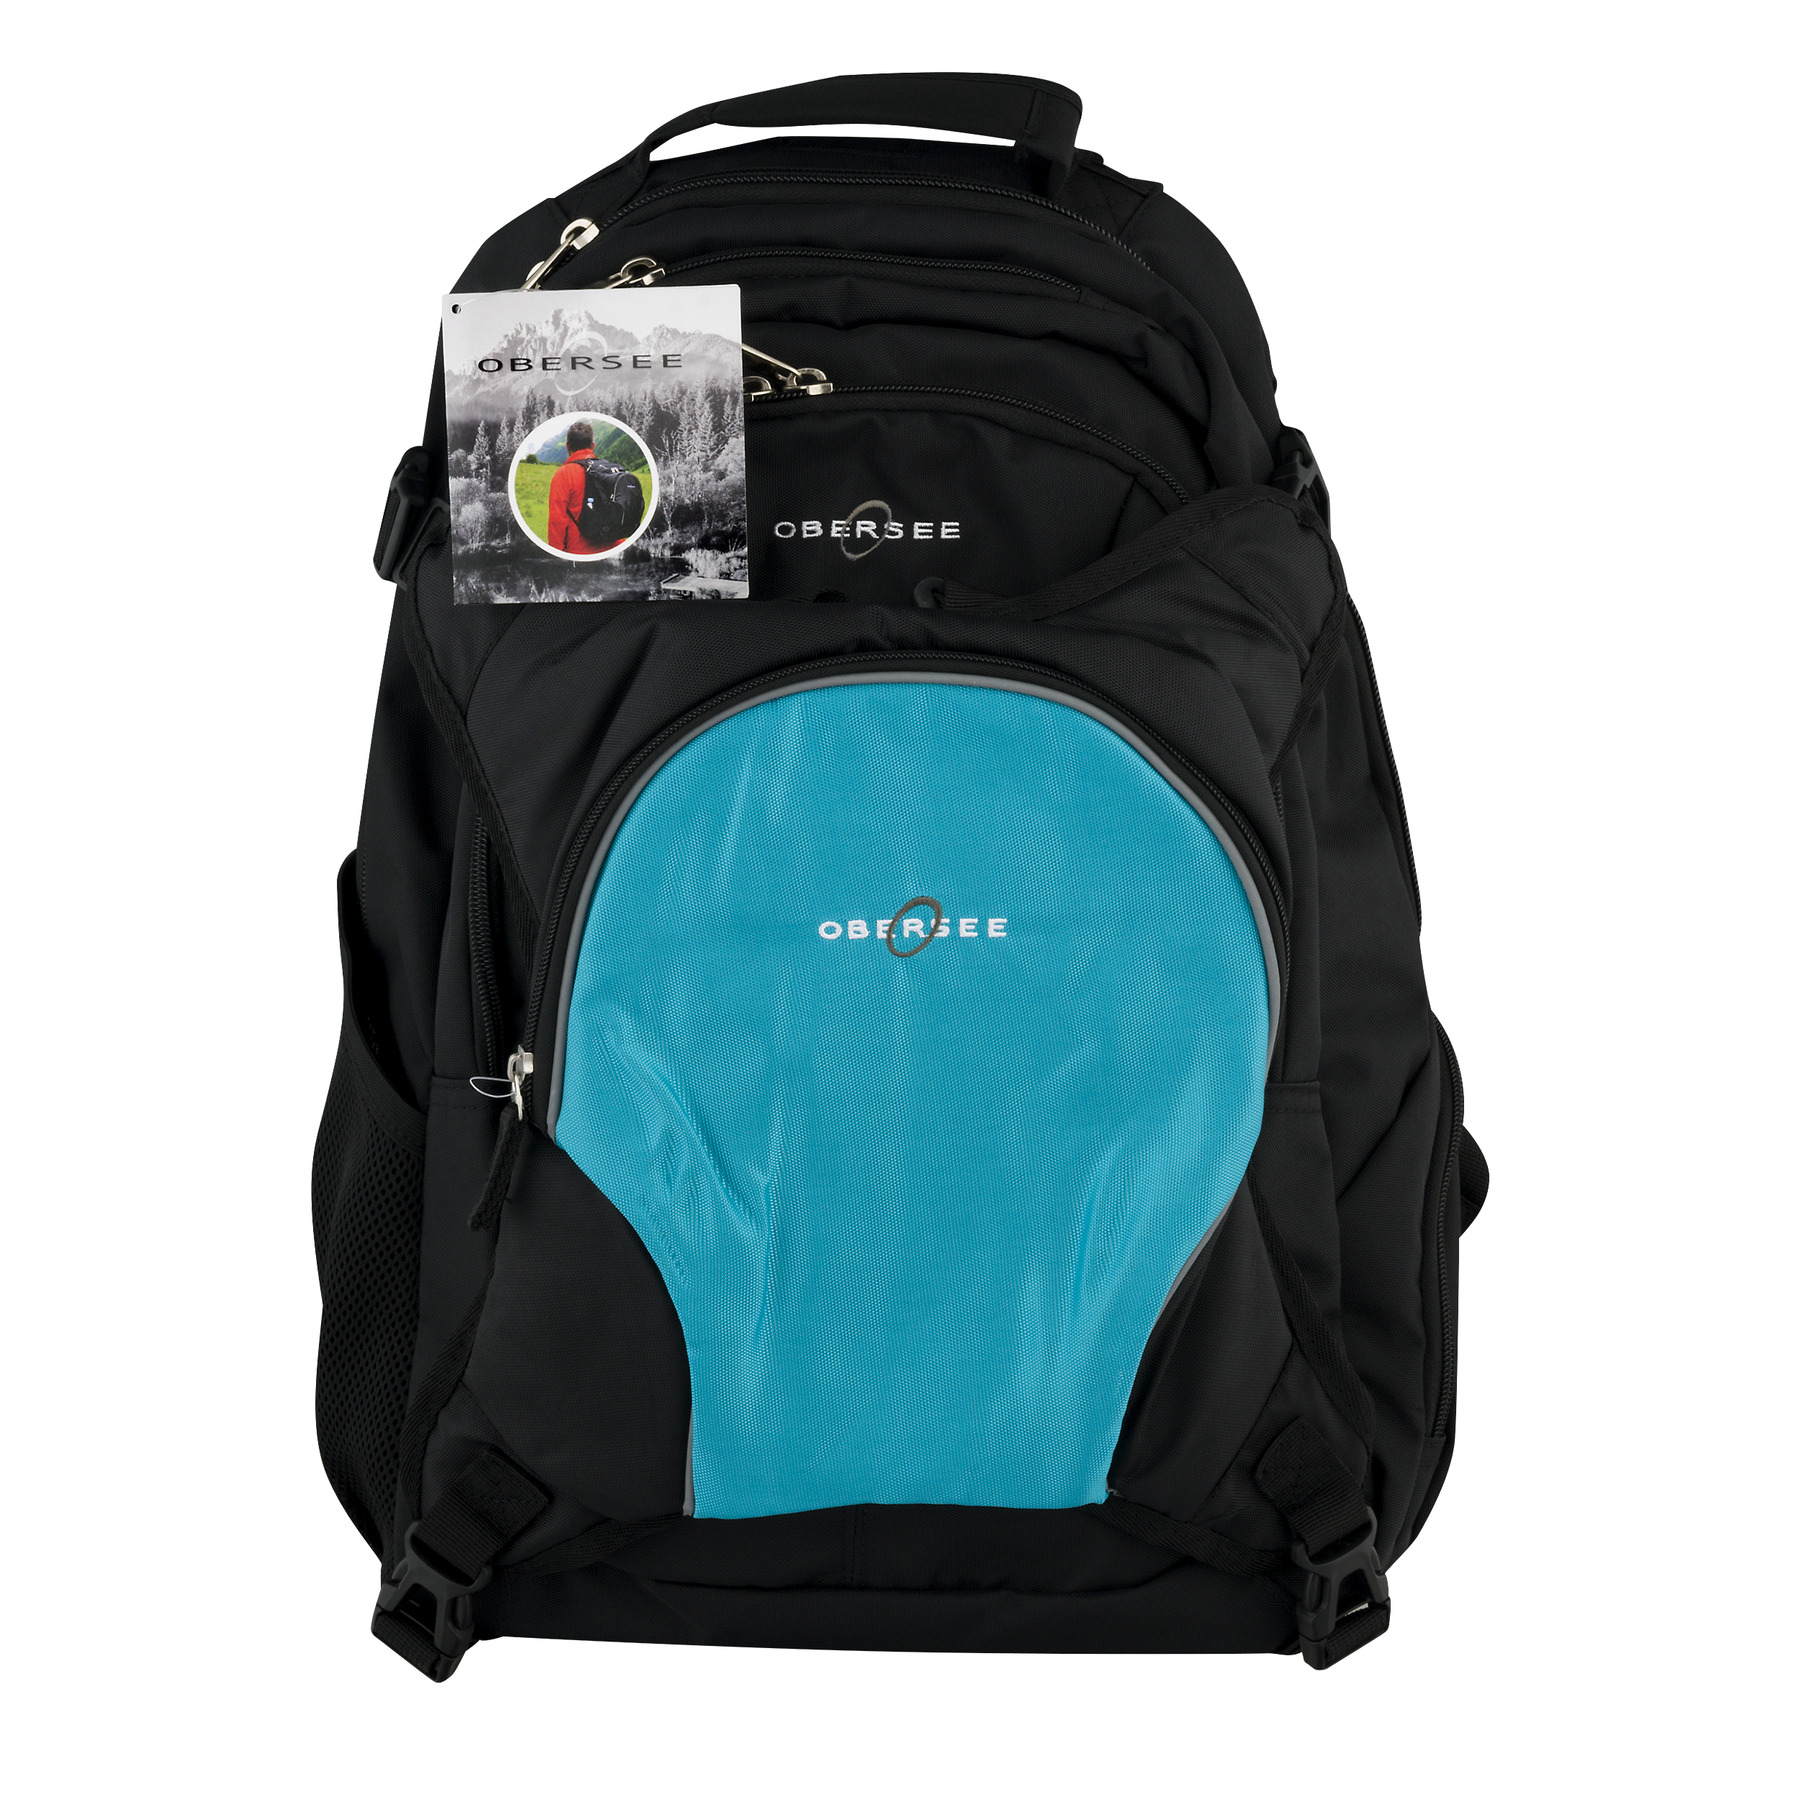 Obersee Bern Diaper Bag Backpack With Cooler Black/Turquoise, 3.0 CT